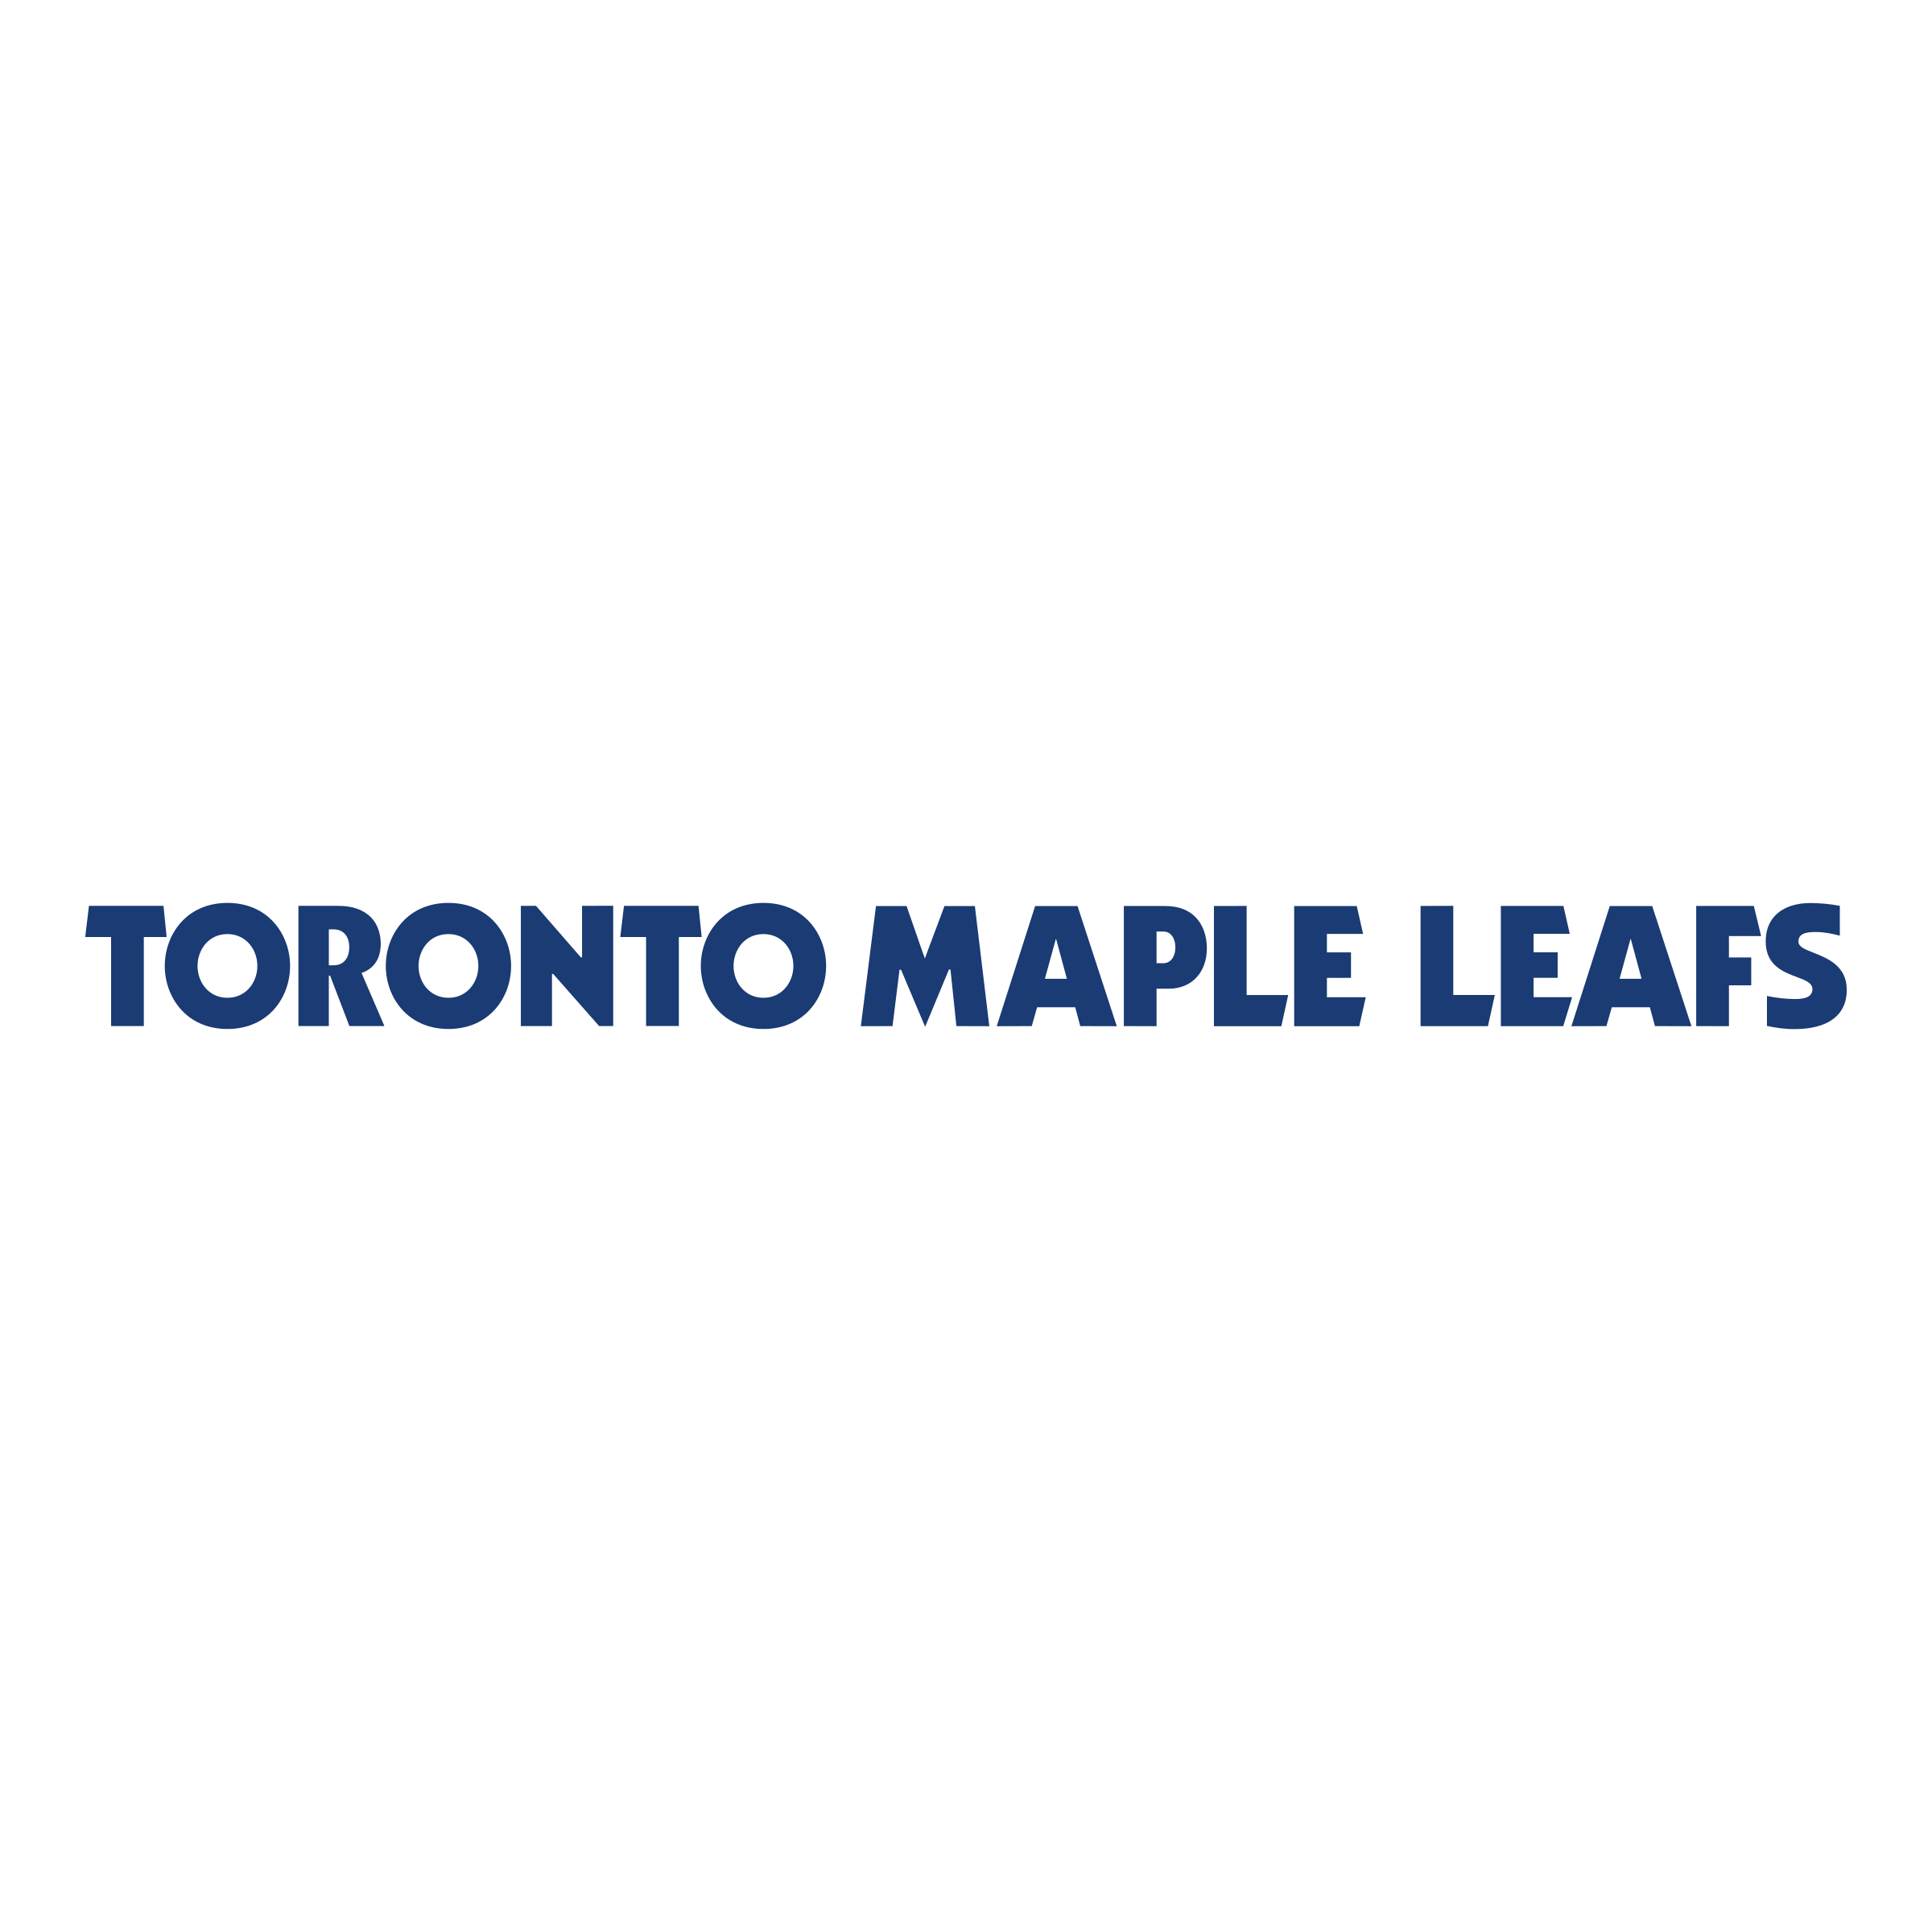 Toronto Maple Leafs Logo Png Transparent Svg Vector Freebie Supply